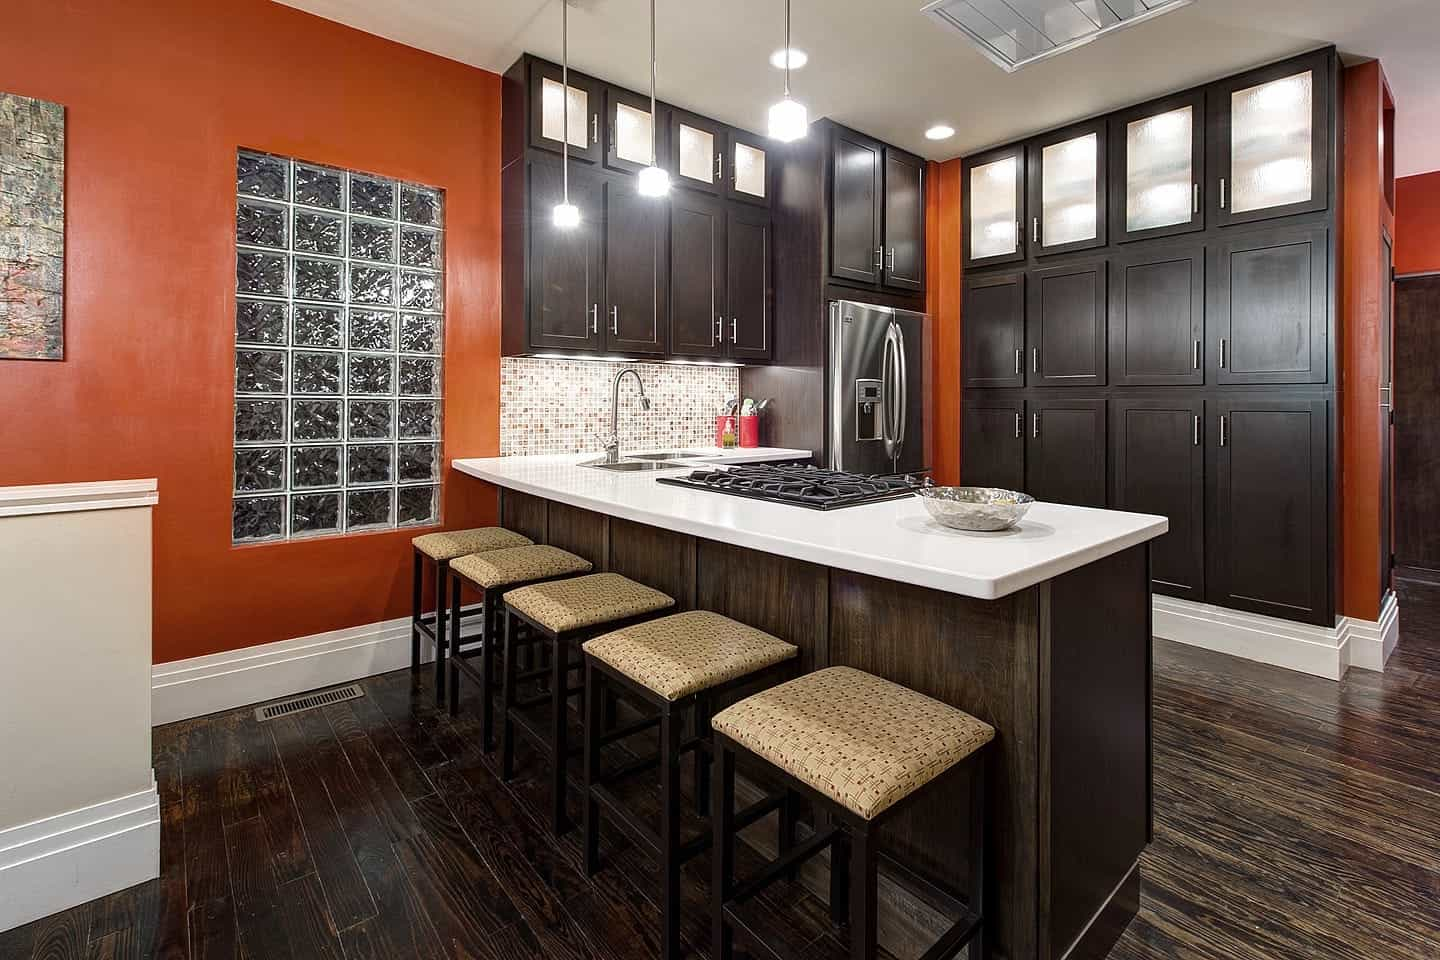 Bold Orange Kitchen Features Dark Wood Cabinetry And Dark Wood Flooring (Image 3 of 12)